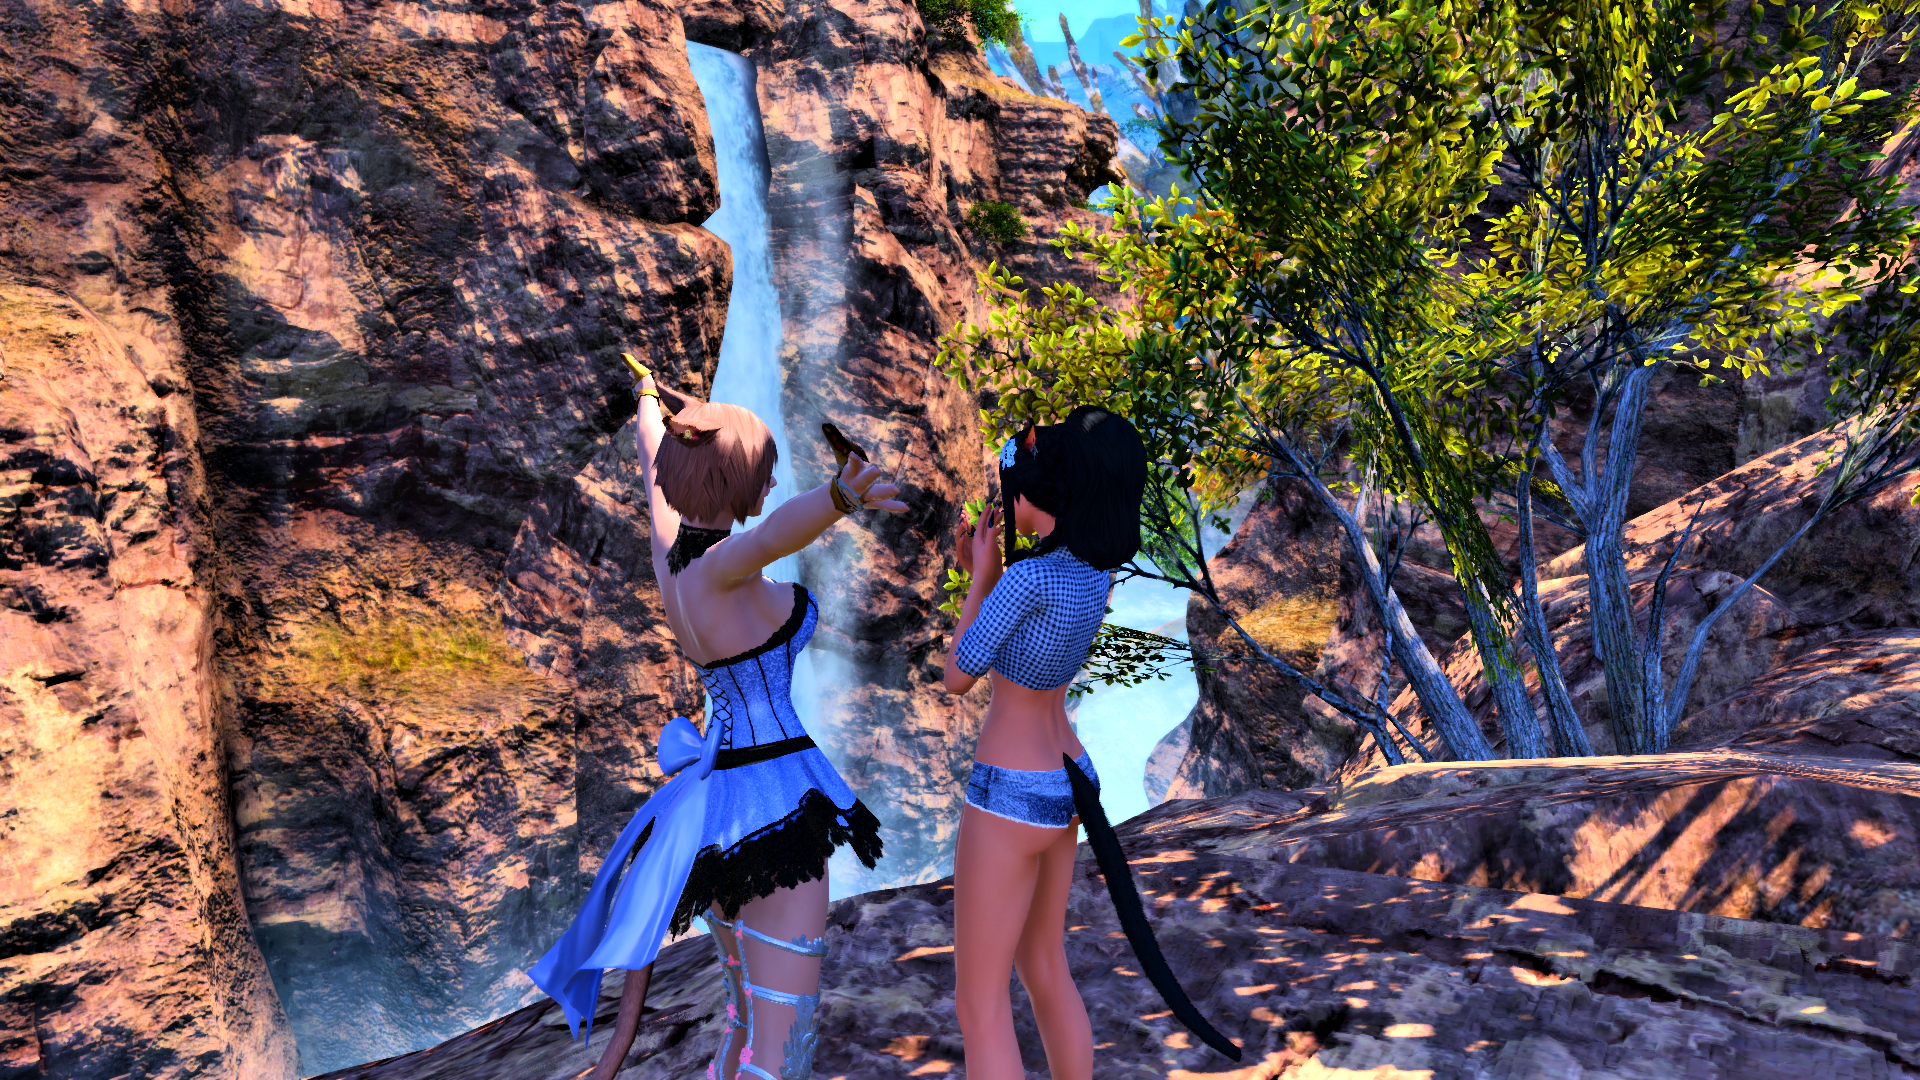 ffxiv_dx11 2018-09-02 14-23-51.png